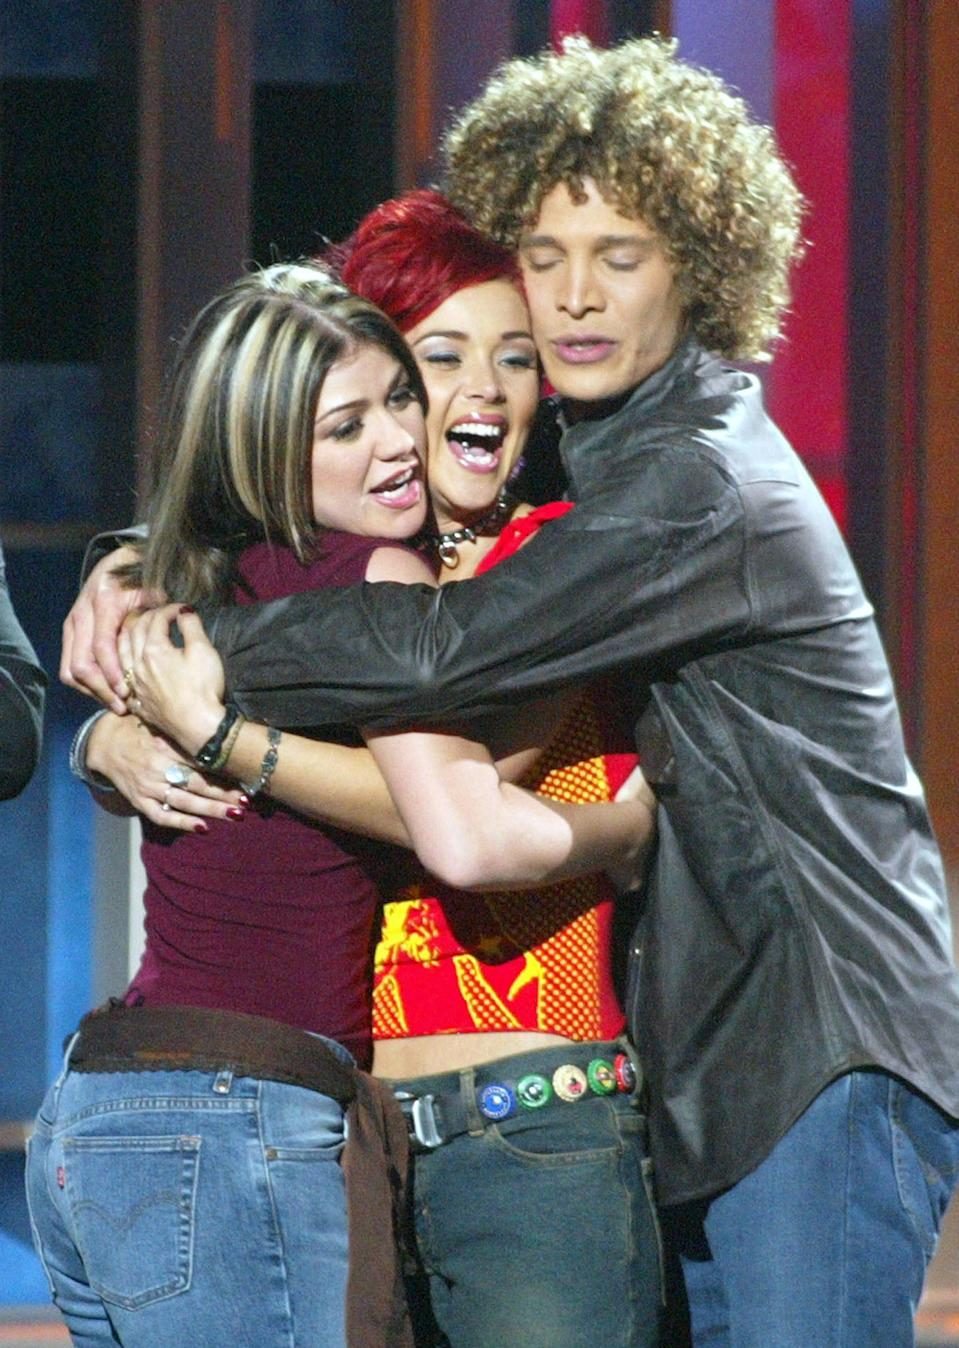 Nikki McKibbin with Kelly Clarkson and Justin Guarini on 'American Idol' in 2002. (Photo: Kevin Winter/ImageDirect/FOX)